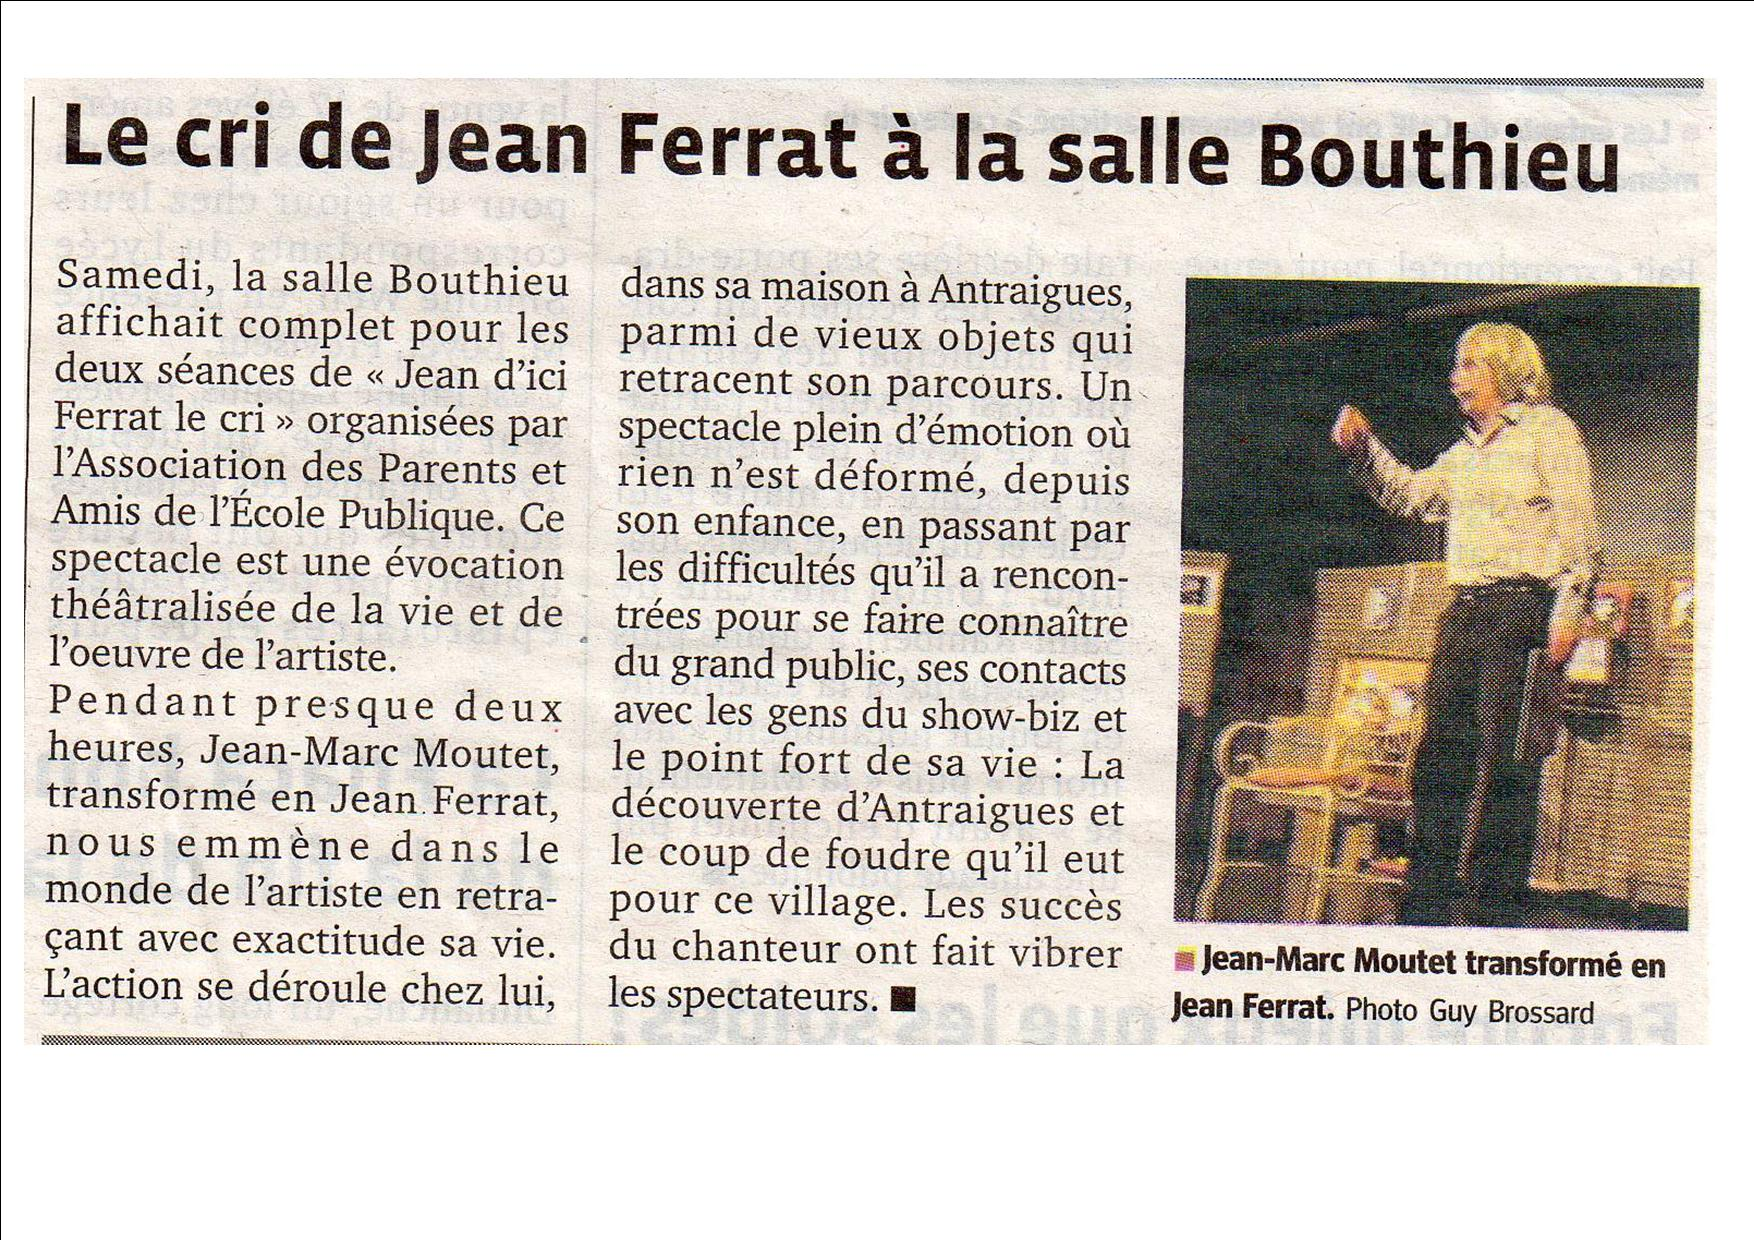 Article st heand